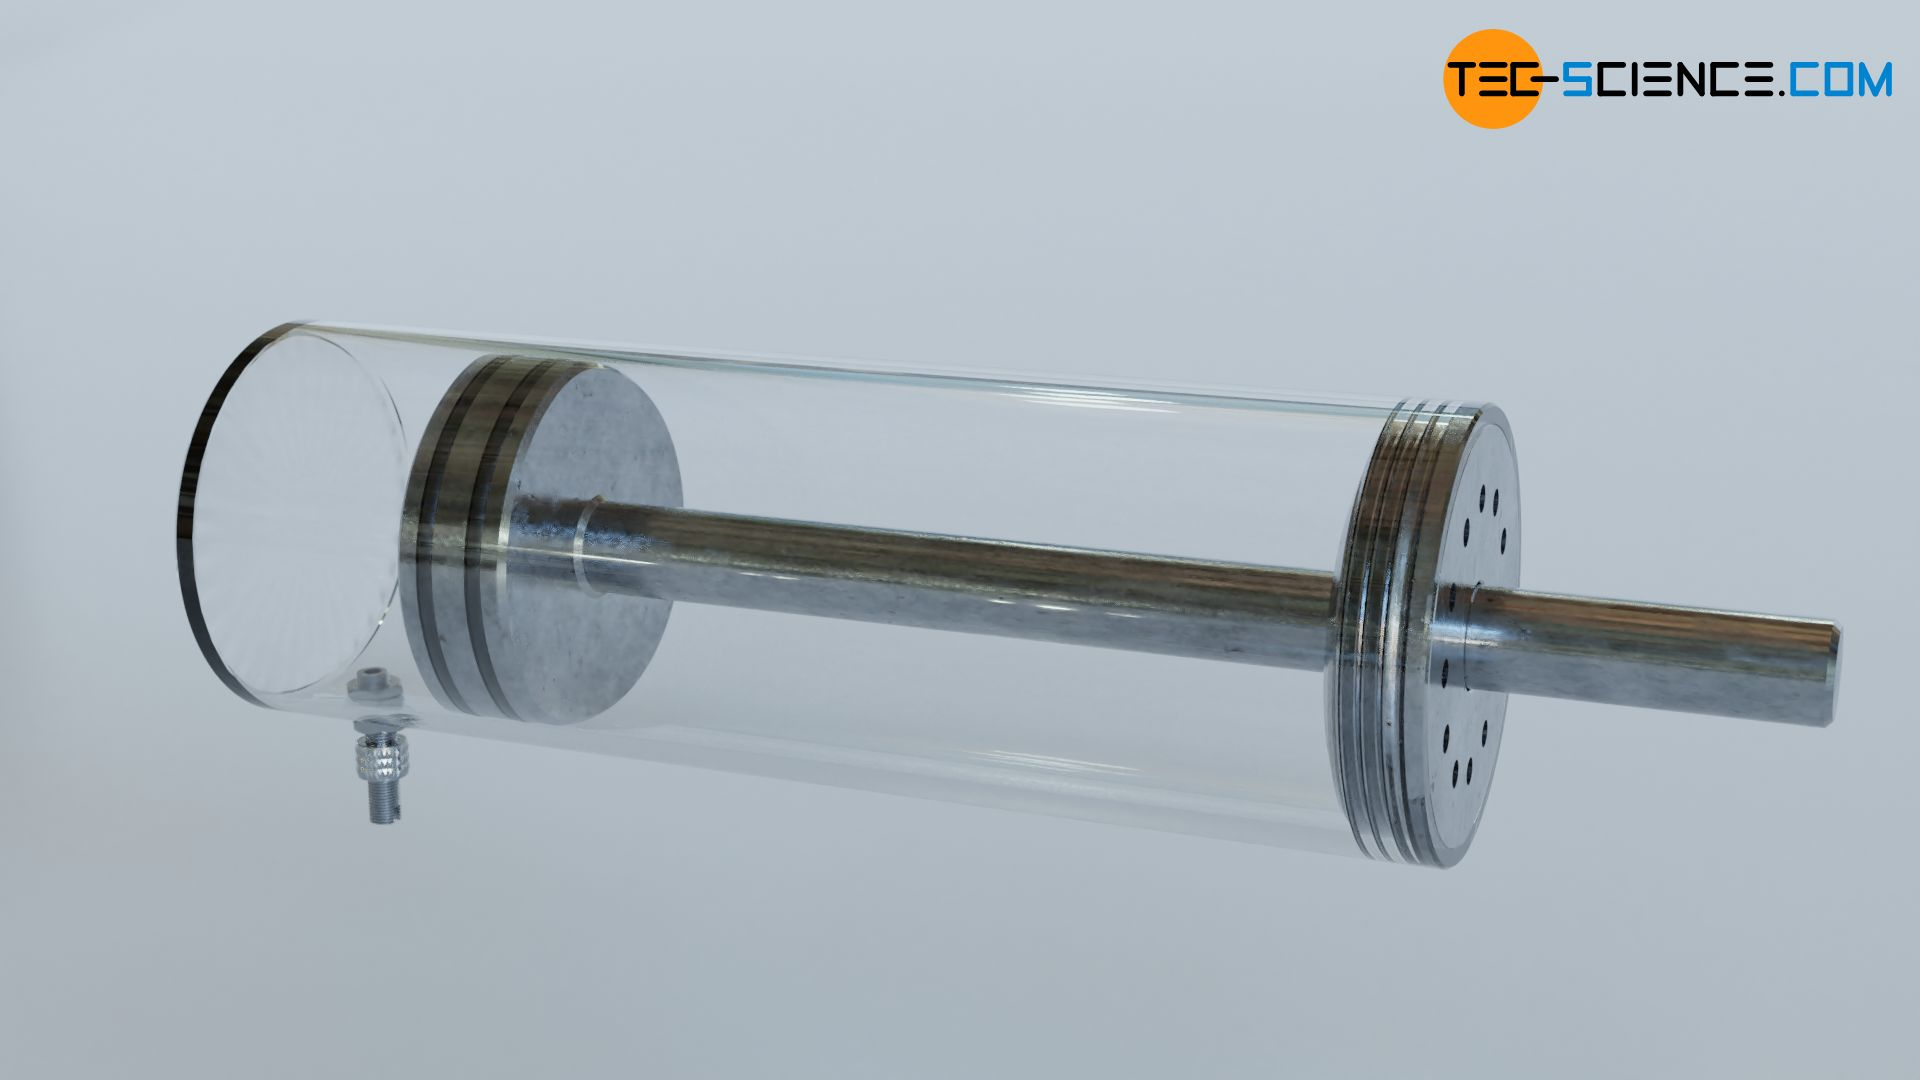 Cylinder with a movable piston